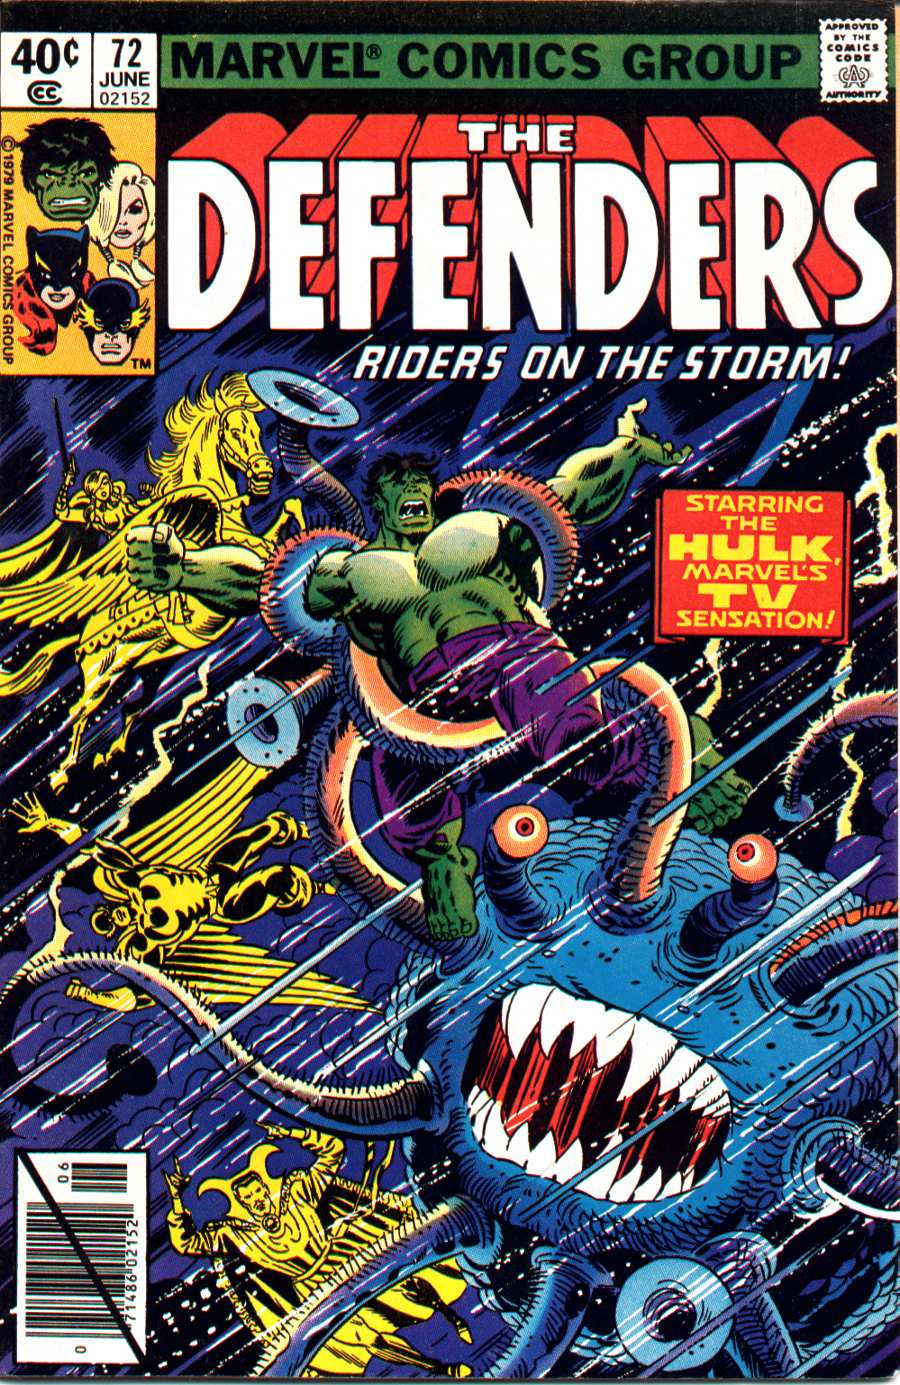 The Defenders (1972) 72 Page 1